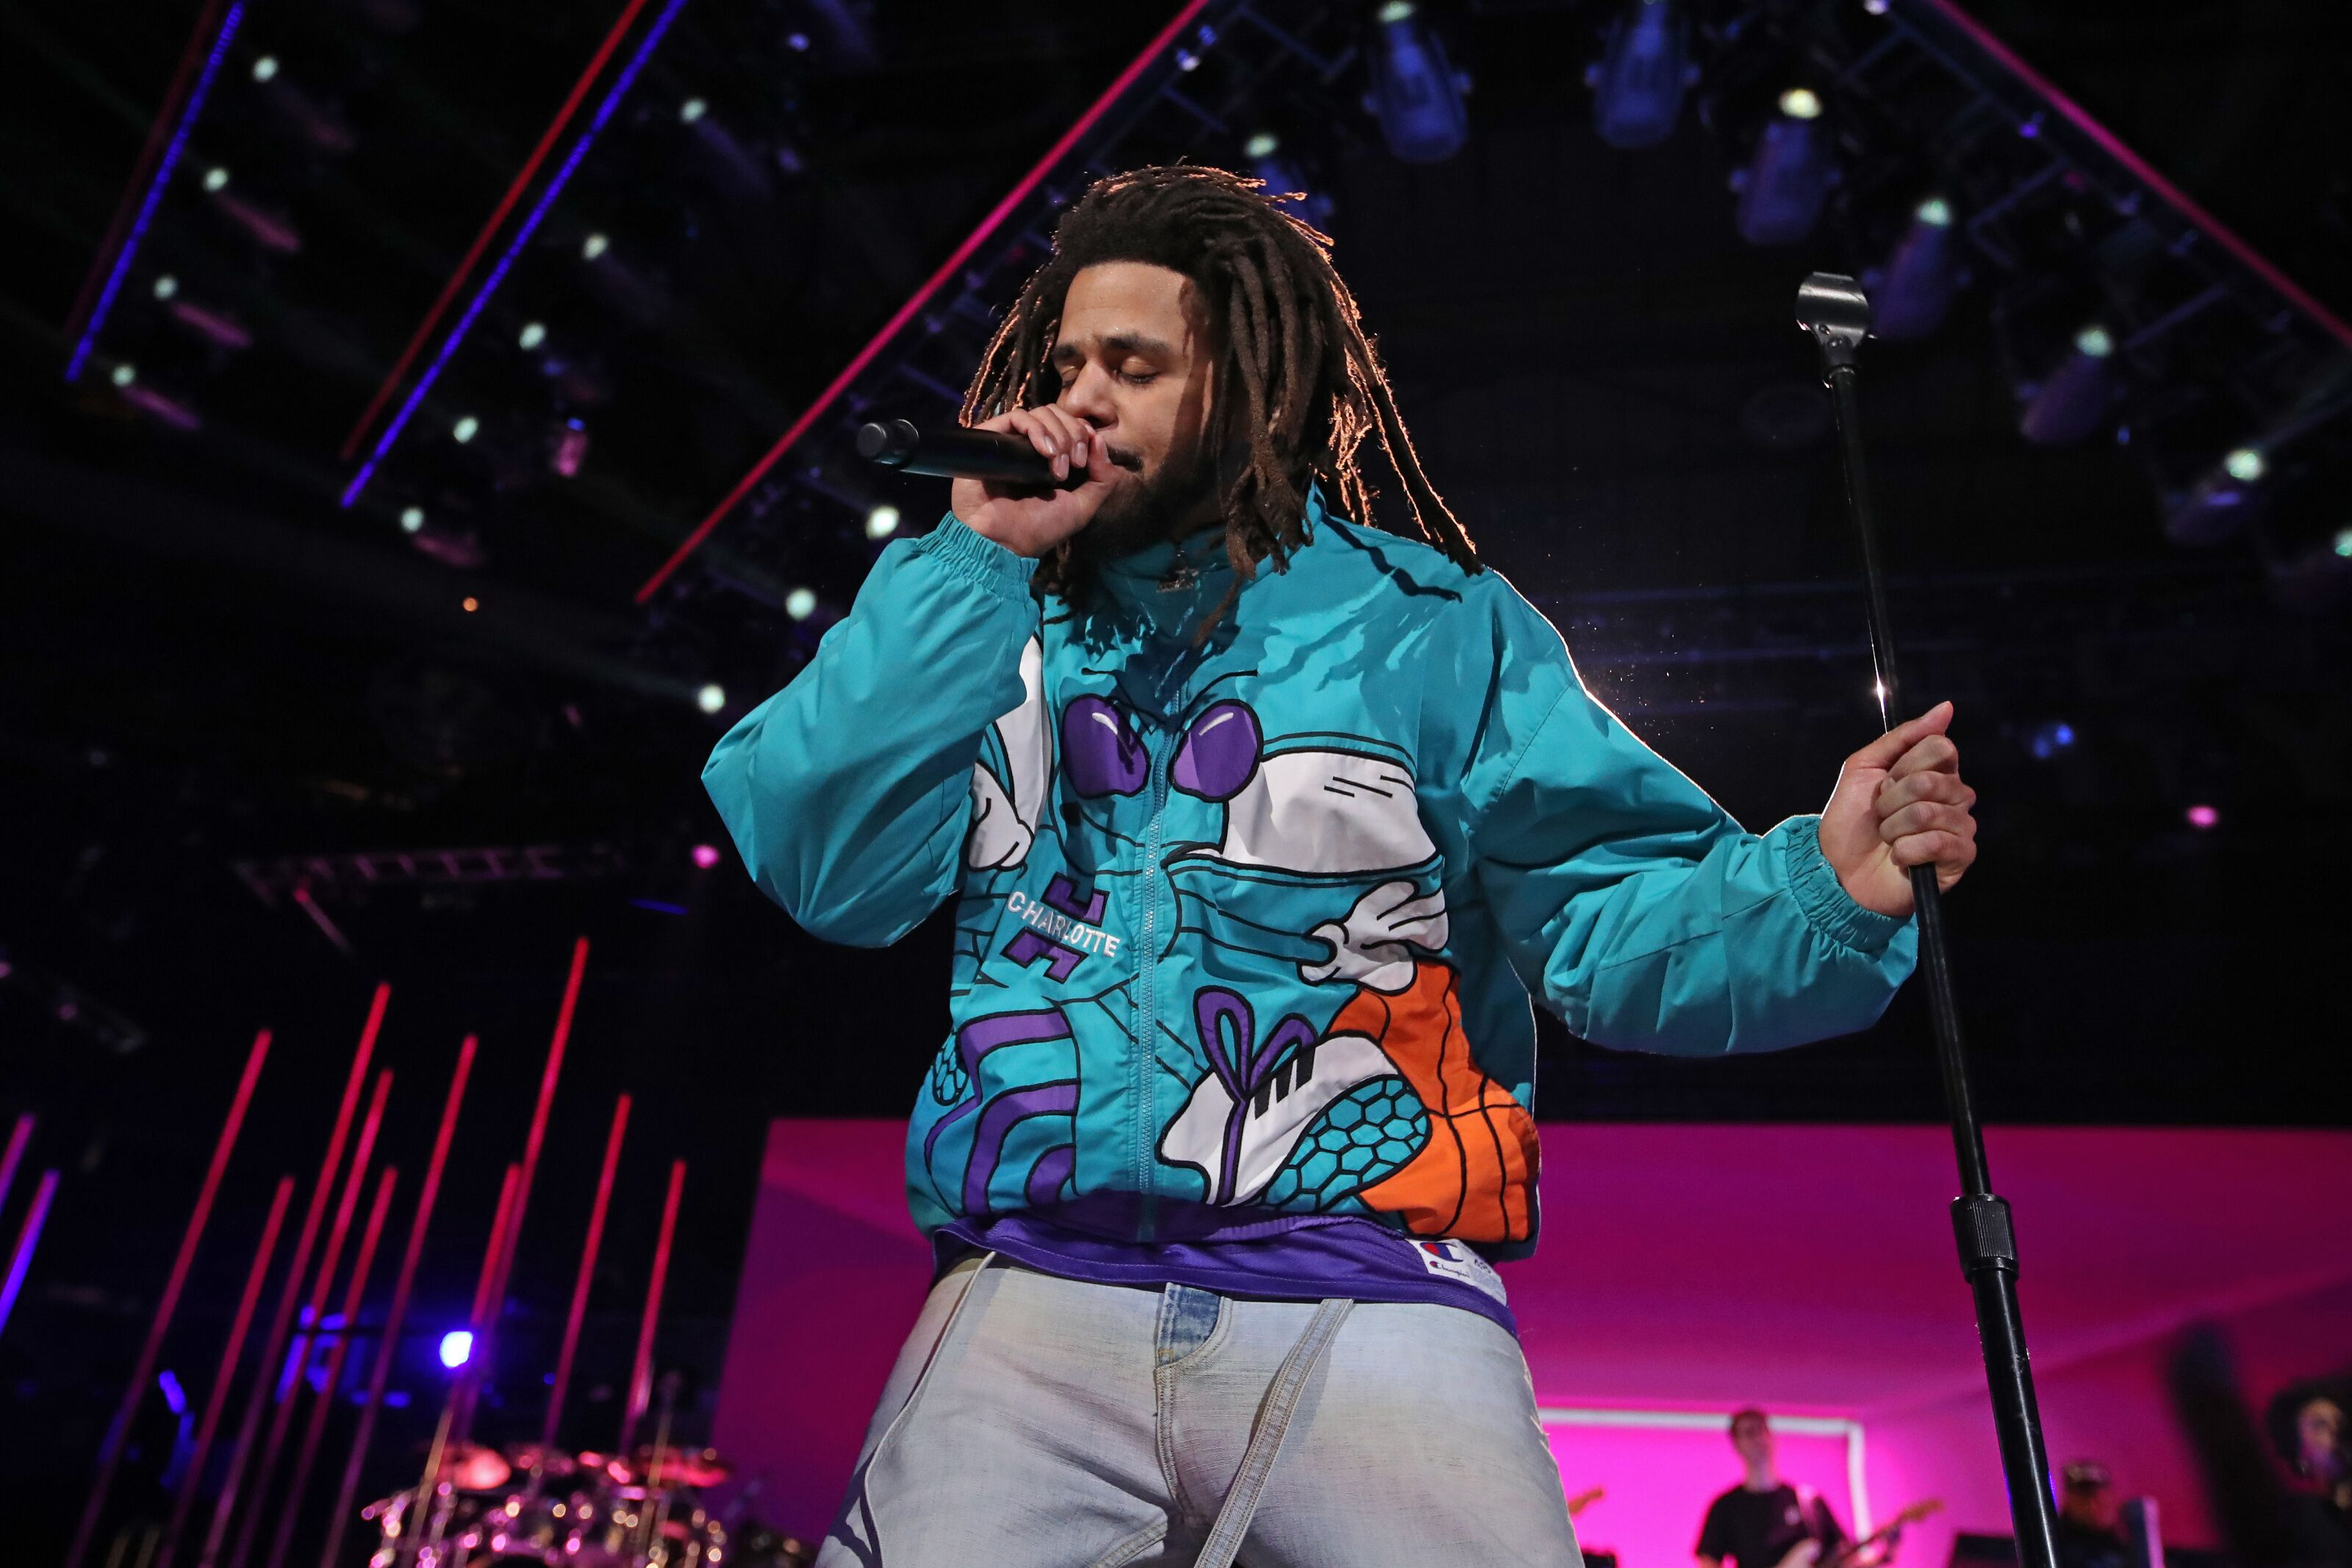 Charlotte Hornets surprise J. Cole with custom jersey at practice